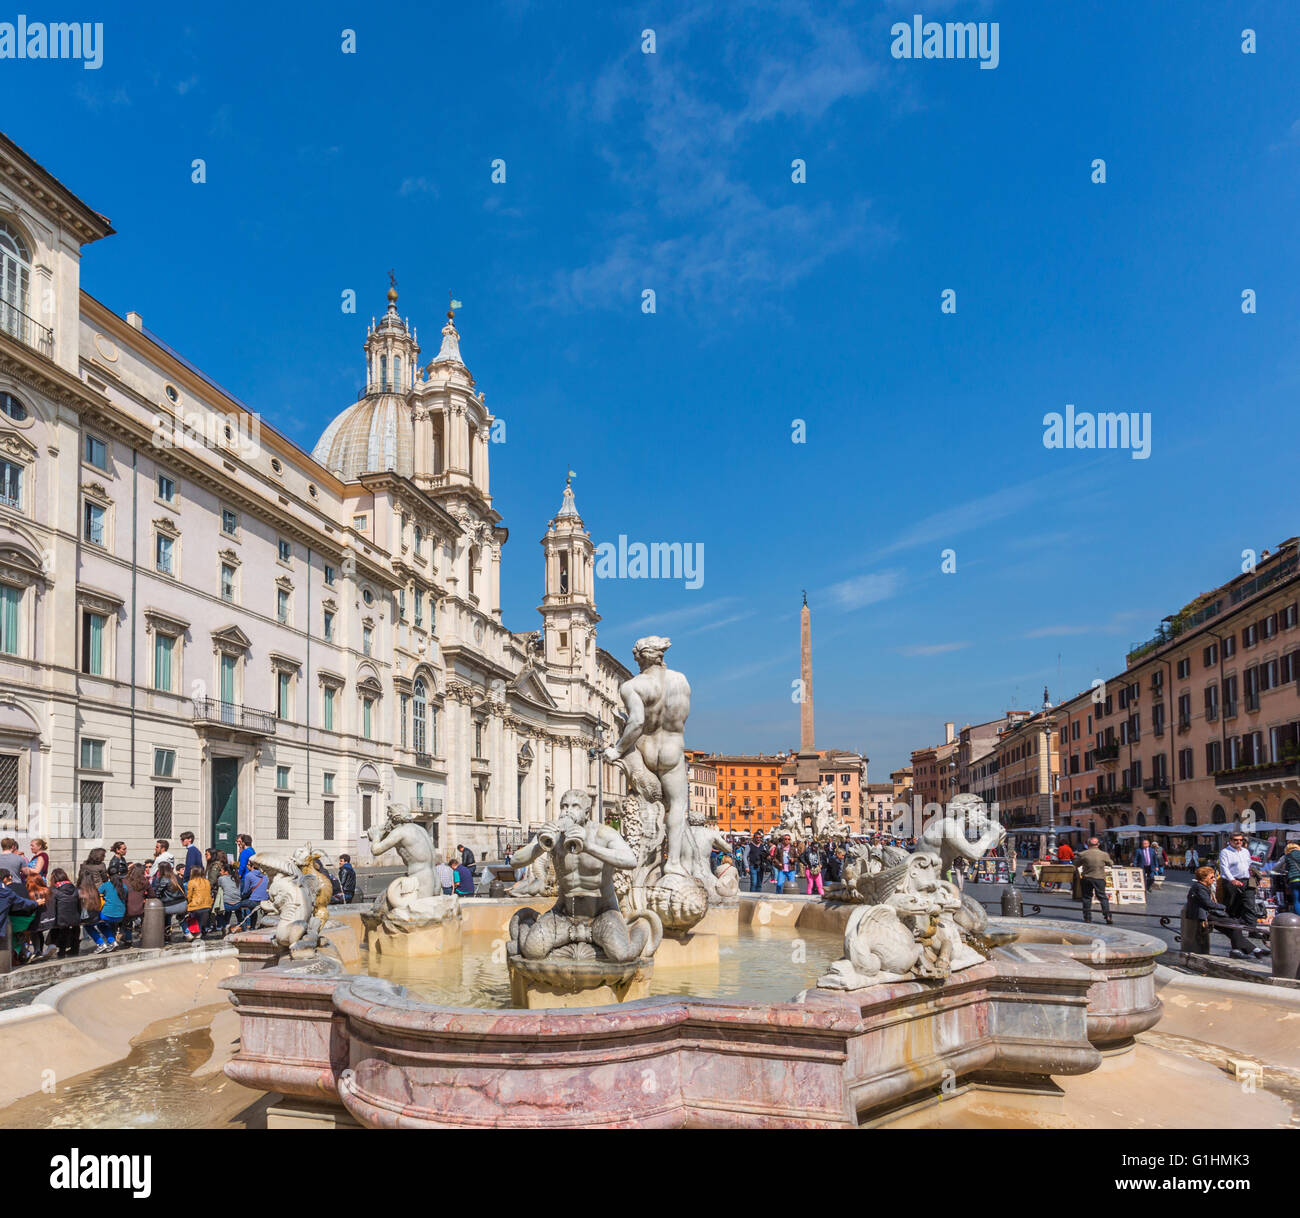 Rome, Italy.  Piazza Navona. Looking north, over the Fontana del Moro, or Moor's Fountain. - Stock Image